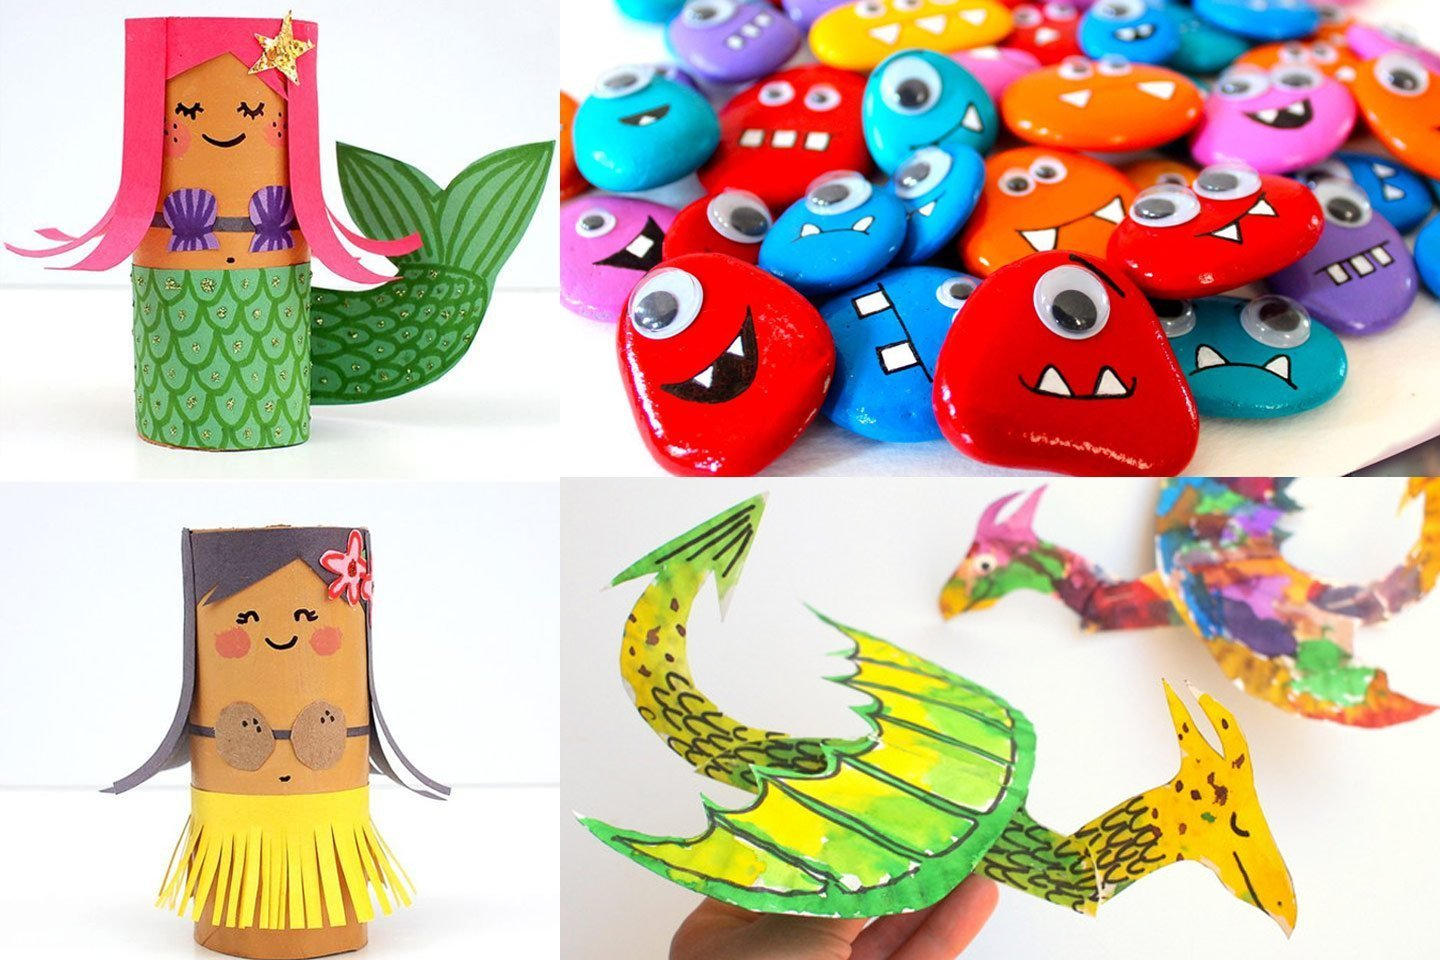 50 creative crafts to keep your kids busy for Diy creative crafts